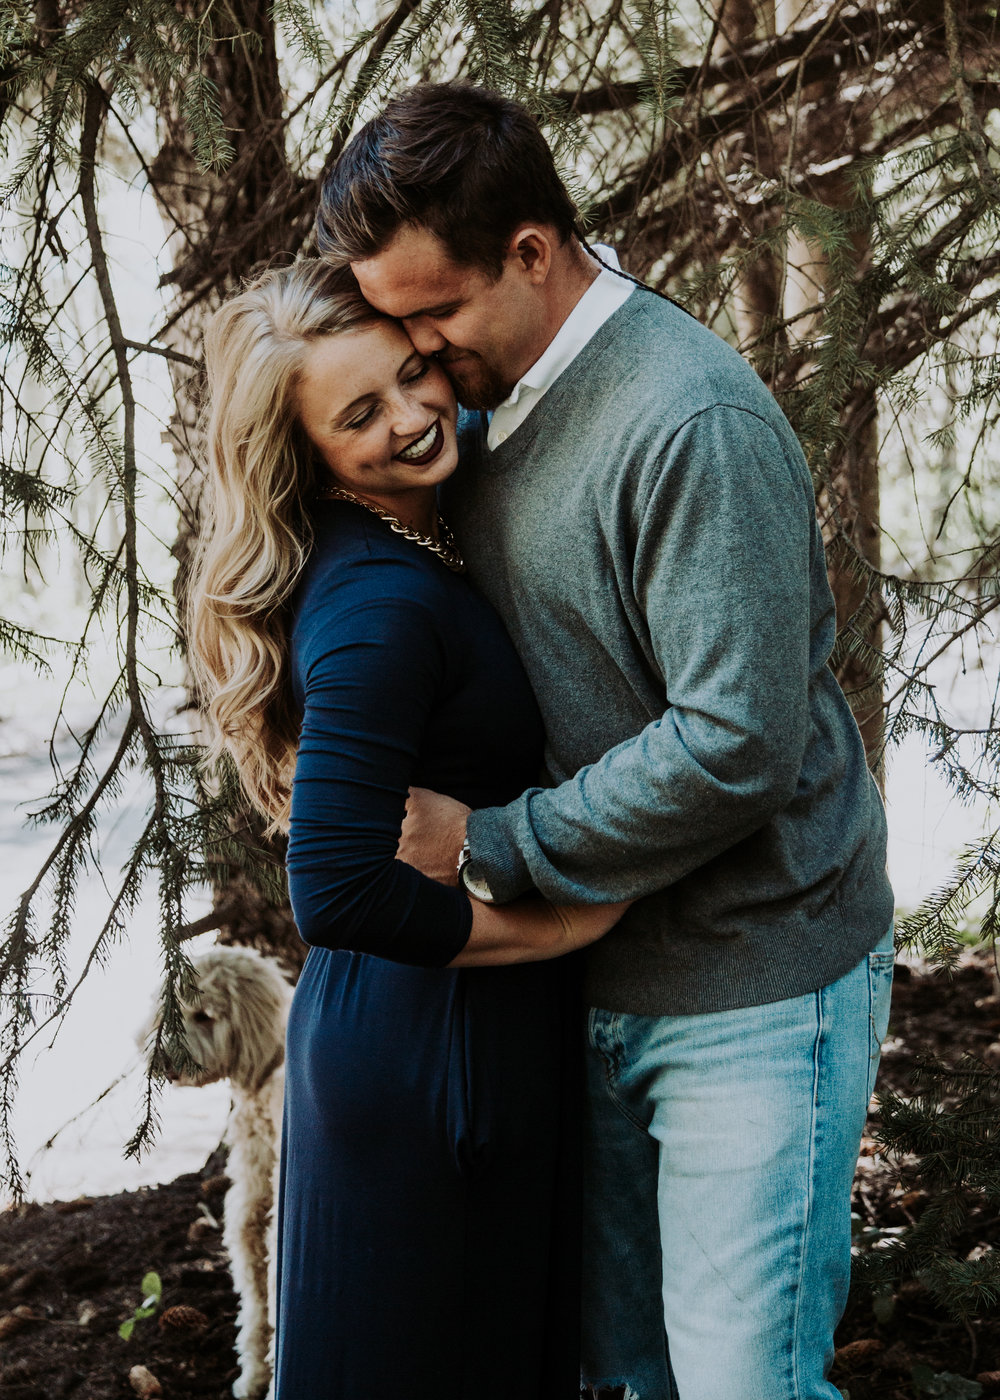 | Lifestyle Photography | Coupe photography | Engagement Photography | Engagement Photography Poses | Utah Blogger I Engagement Ideas I Engagement outfit I Pose Idea I Anniversary shoot